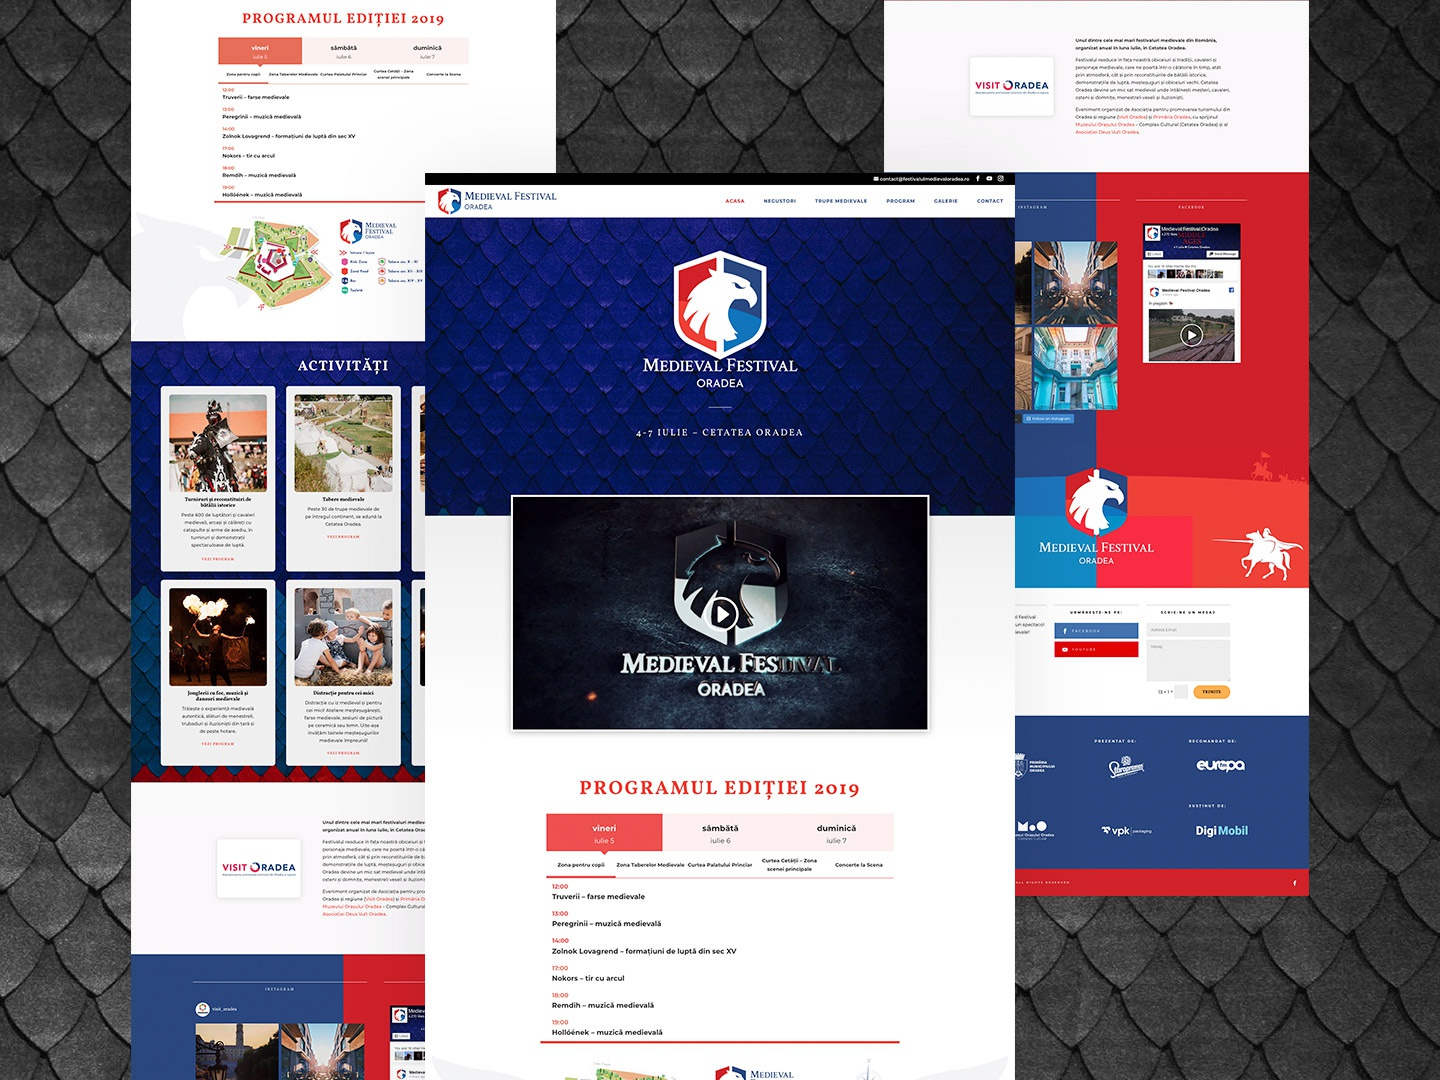 Medieva Festival Oradea Web Design simple ux illustration gradient typography colors design ui  ux ui landingpage landing pages landing page video logo red blurred blue medieval webdesign web